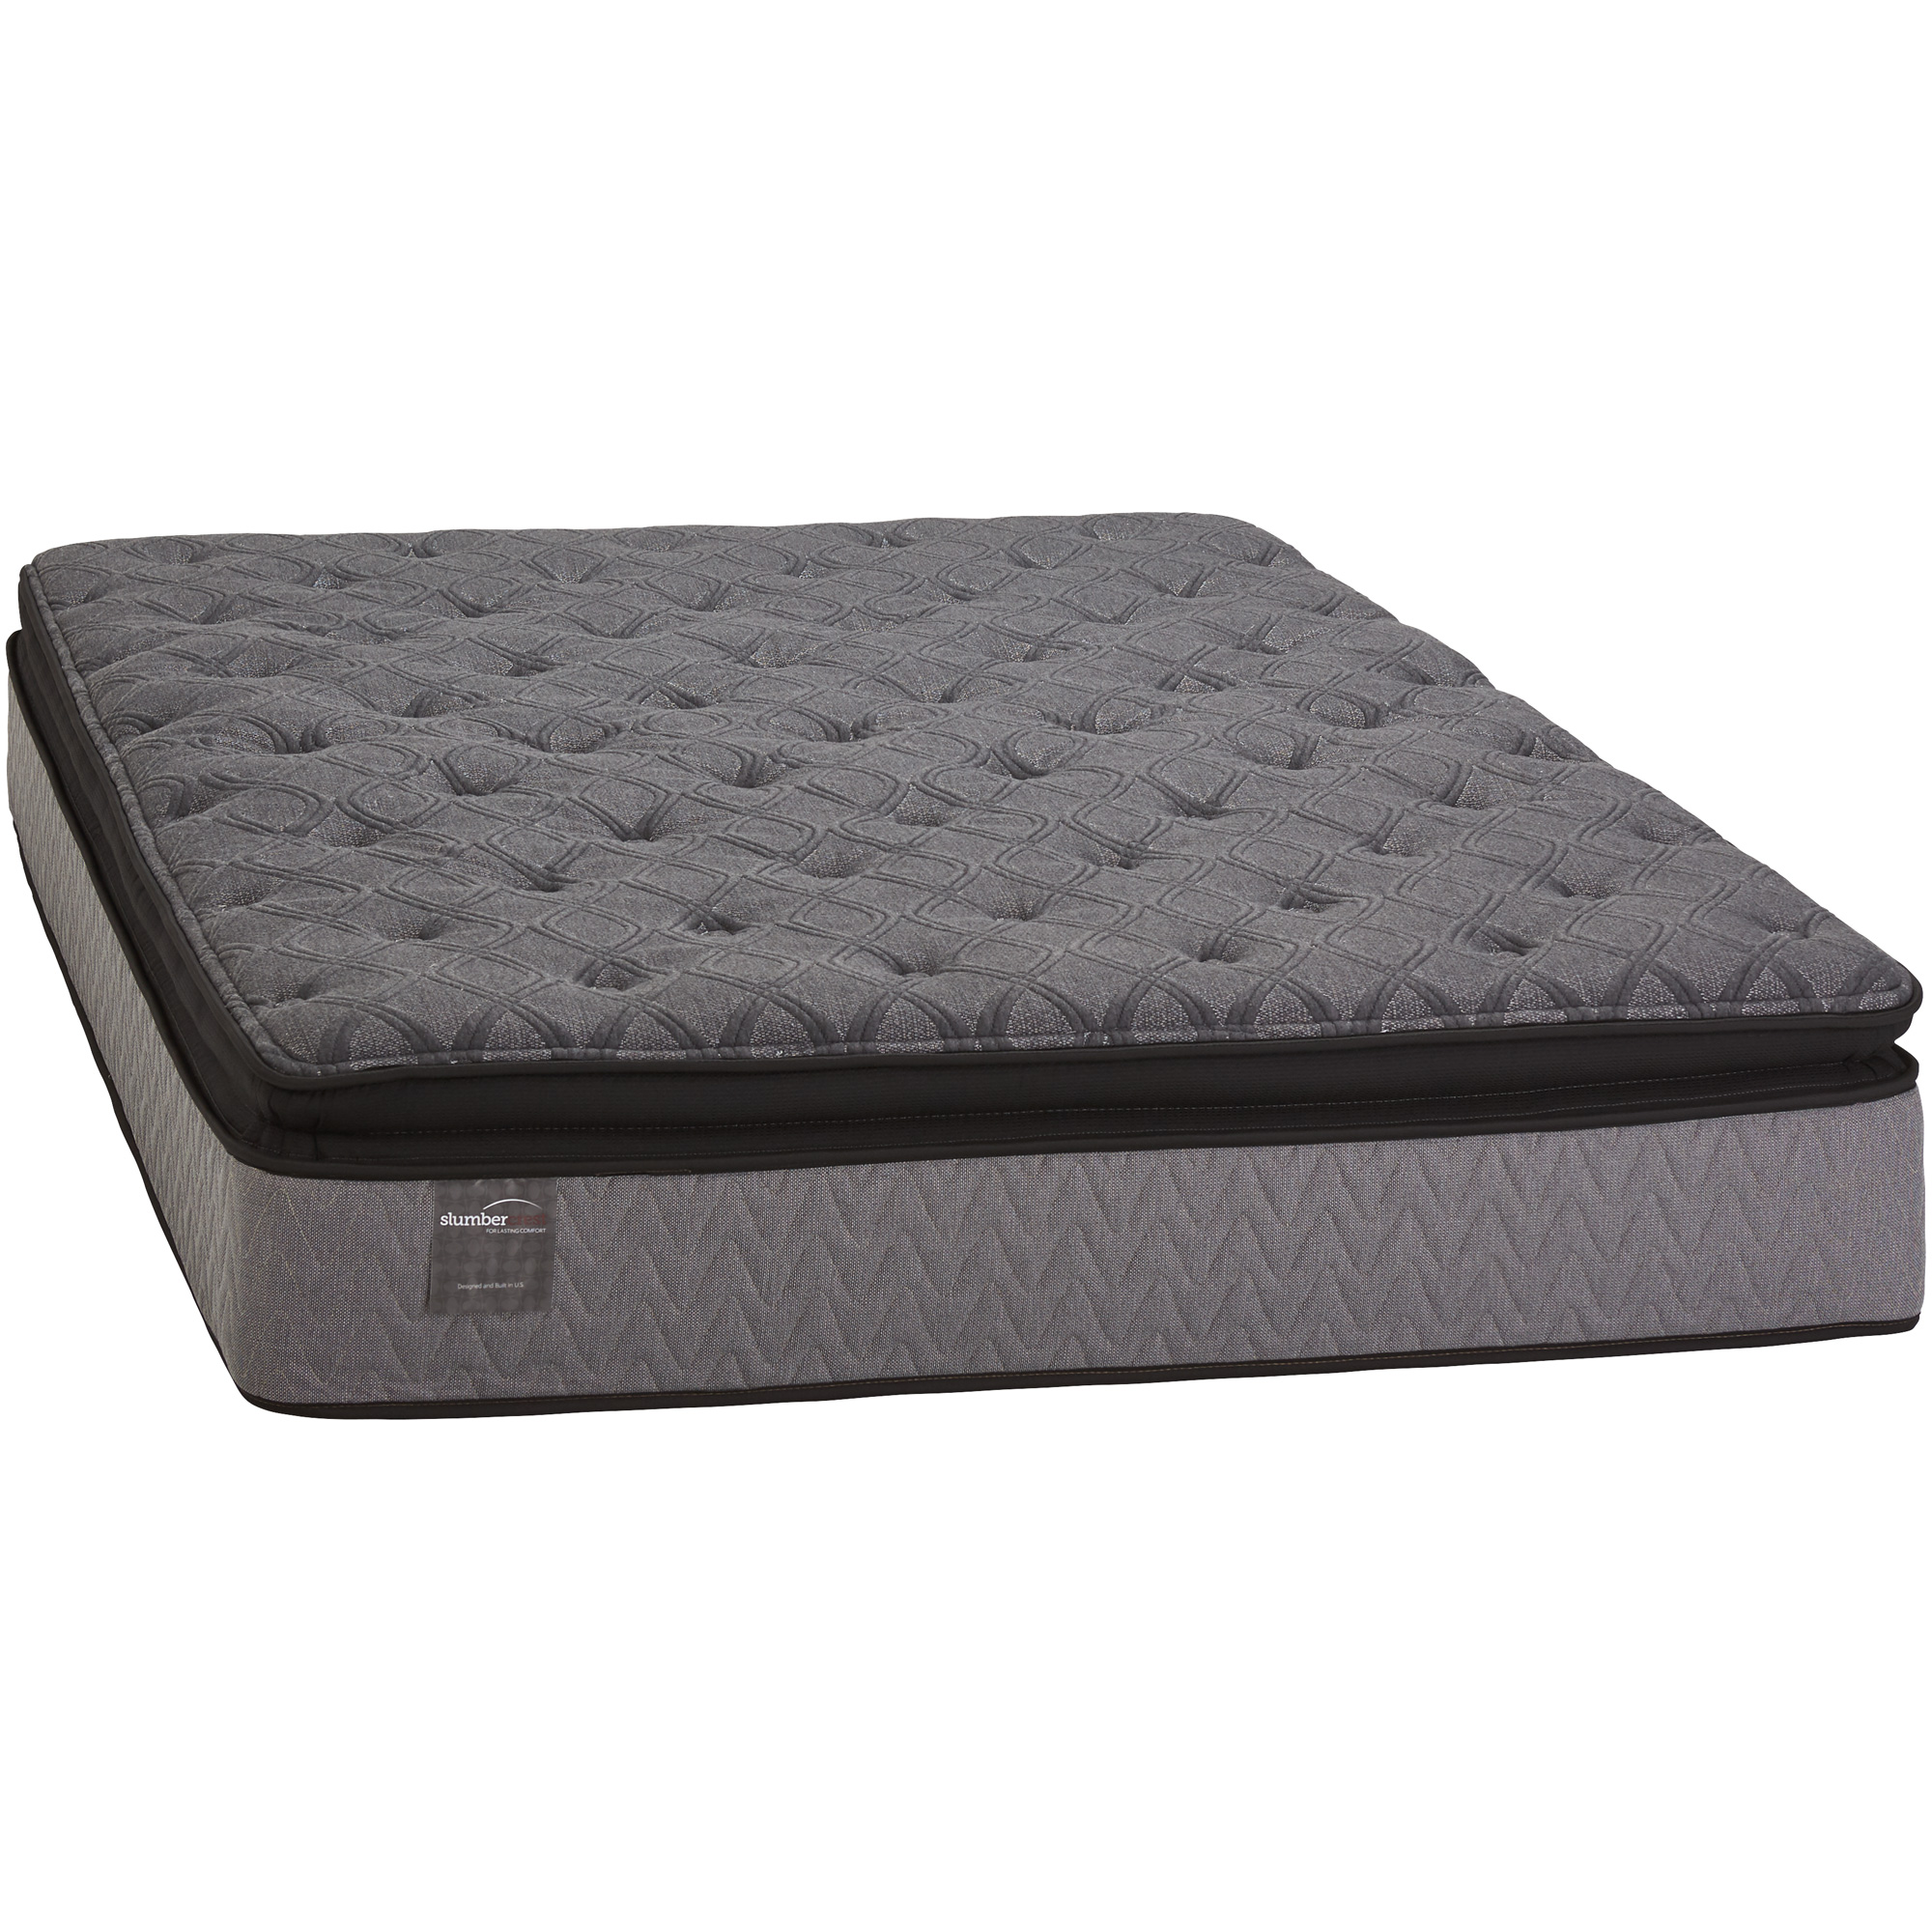 Slumbercrest Plush Pillowtop King Mattress